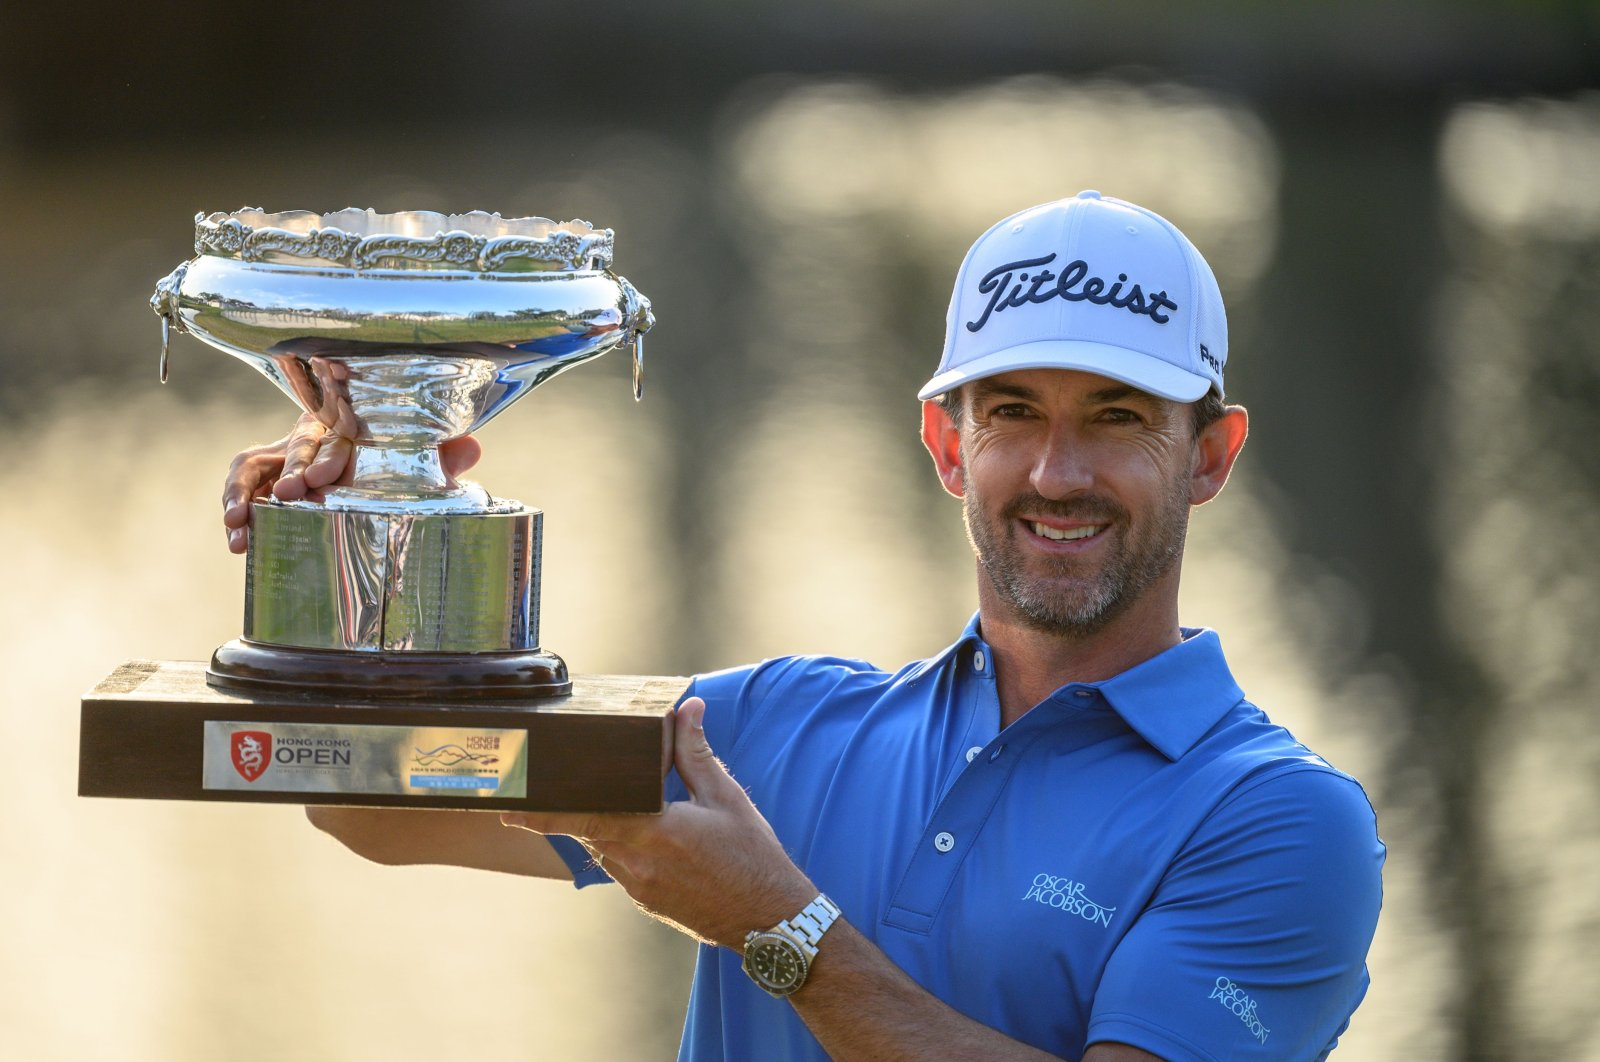 Wade Ormsby posing with the champion's trophy after winning the Hong Kong Open golf tournament in Hong Kong, Jan. 12, 2020. (AFP Photo)